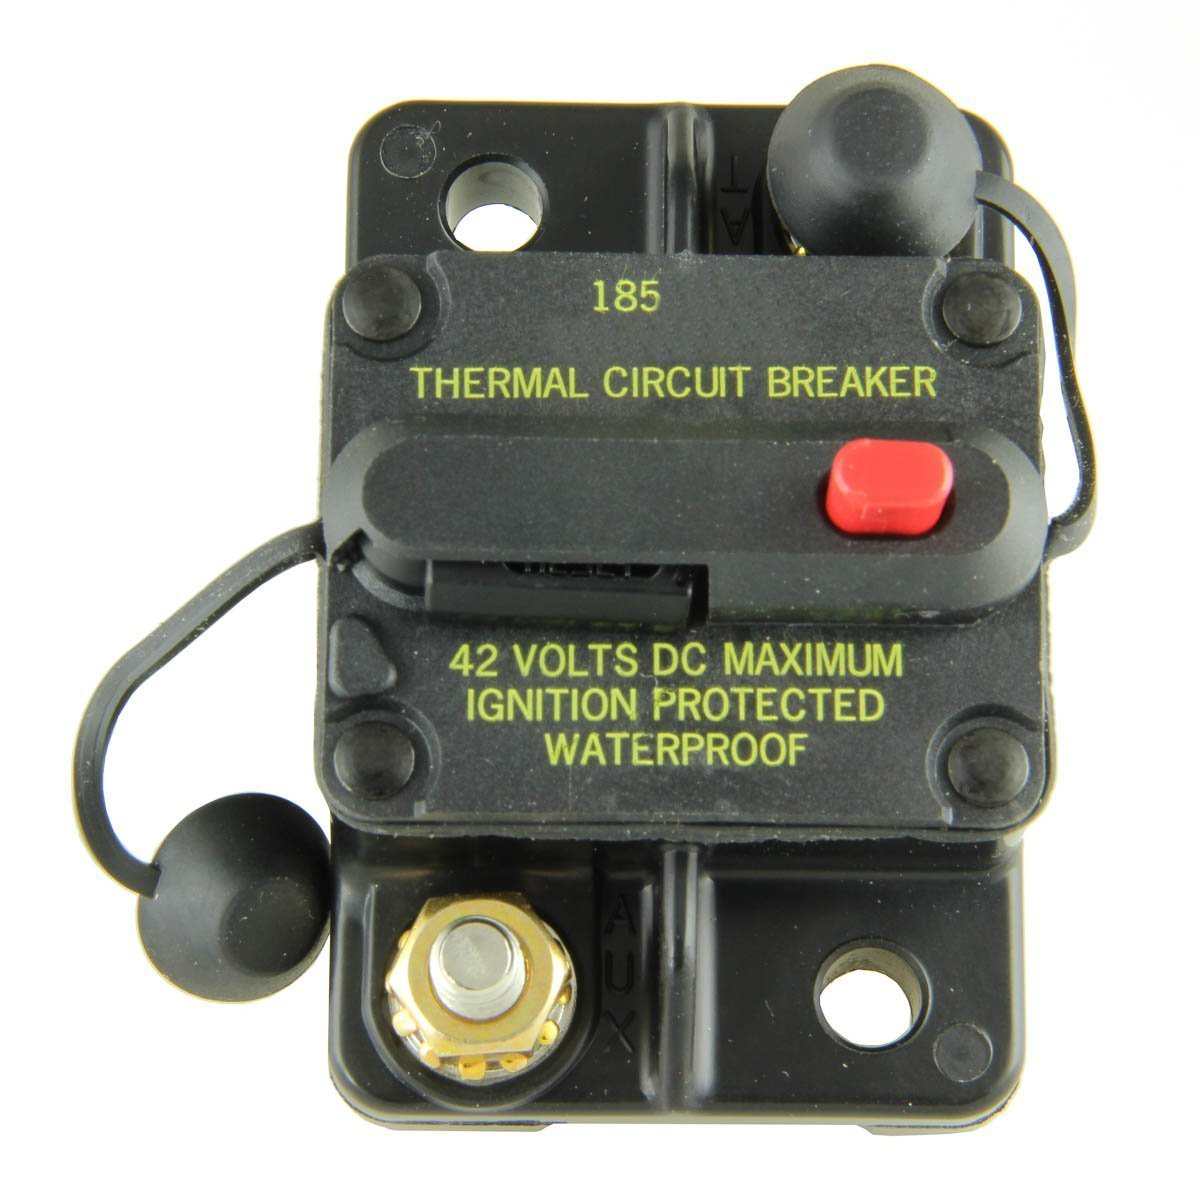 Bussmann CB185-35 Surface-Mount Circuit Breakers 35 Amps 1 per pack